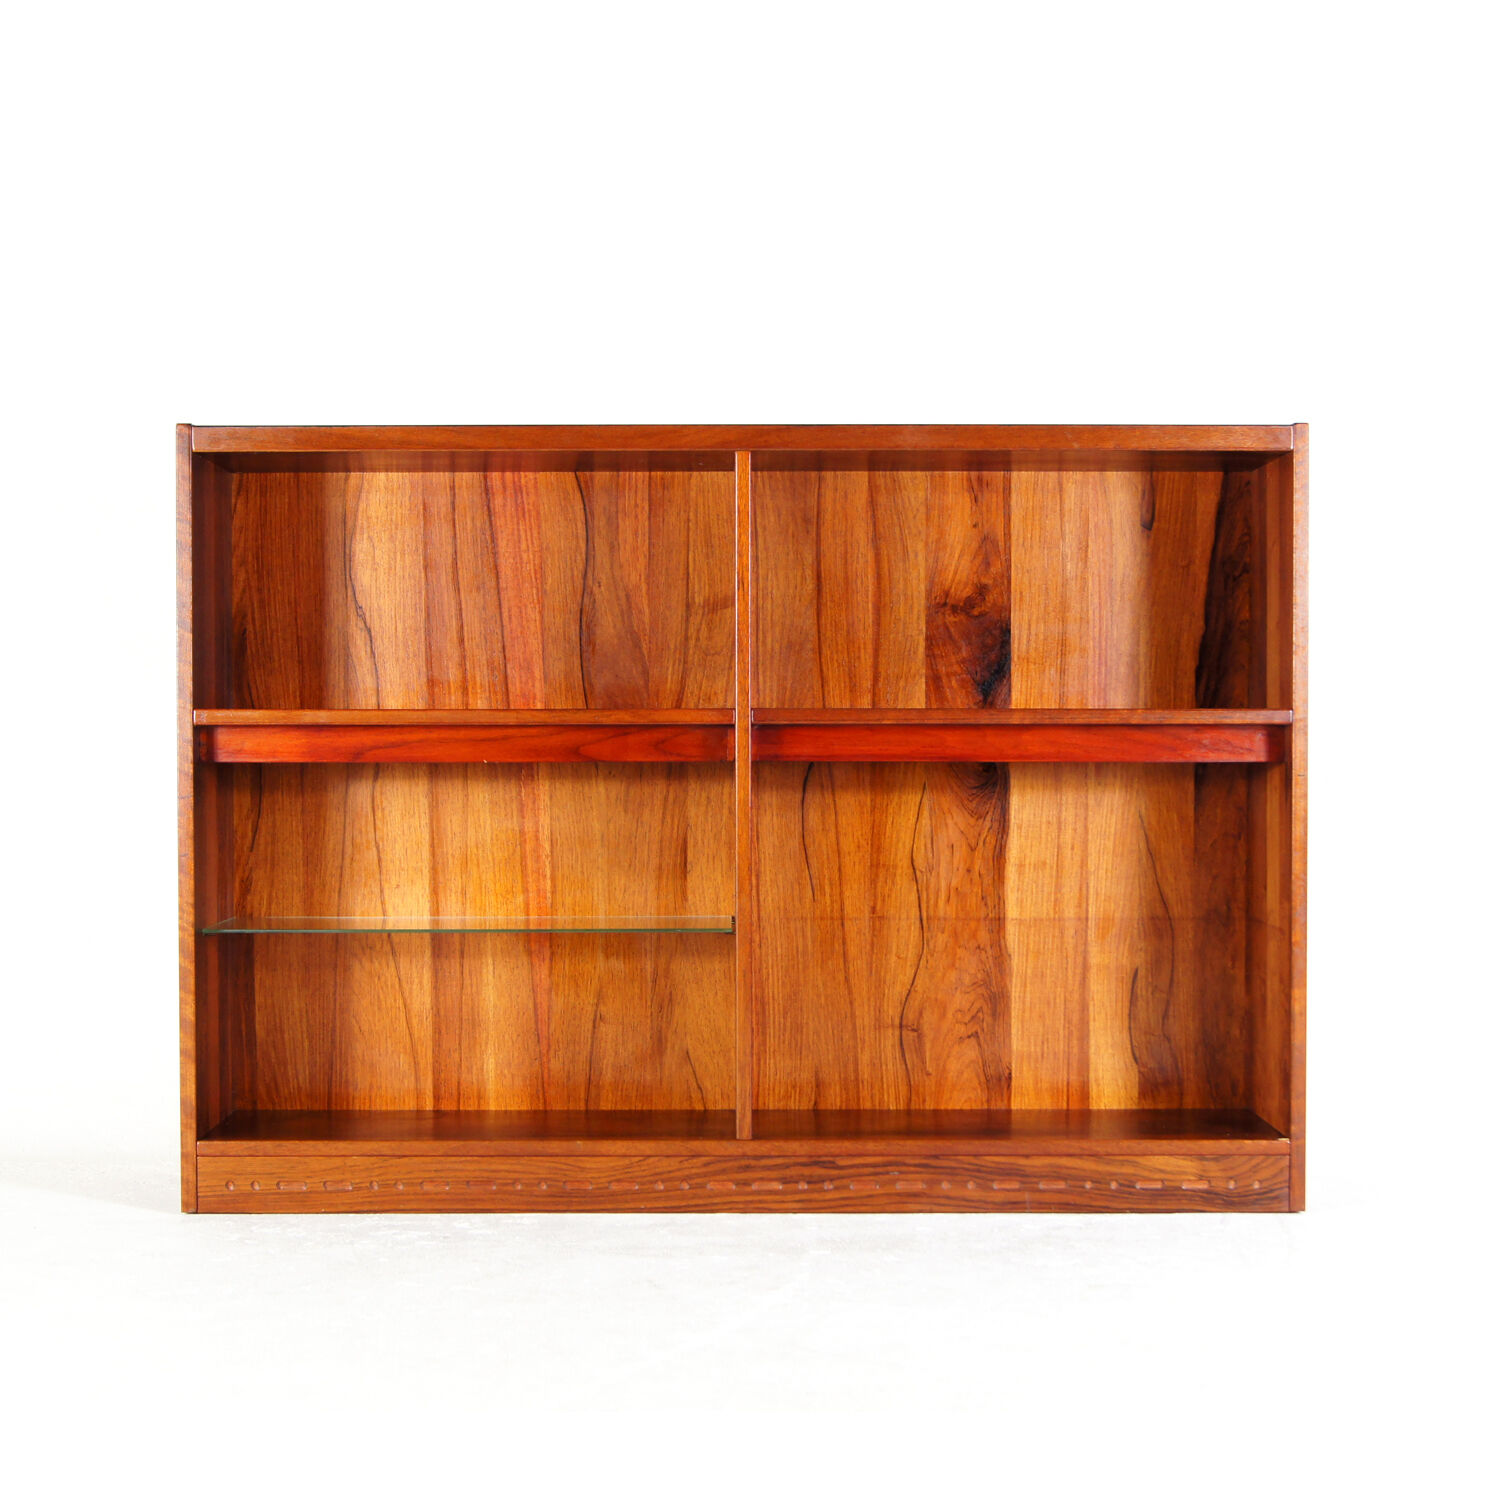 Retro Vintage Danish Rosewood Glass Display Cabinet Bookcase Book Shelves 1970s